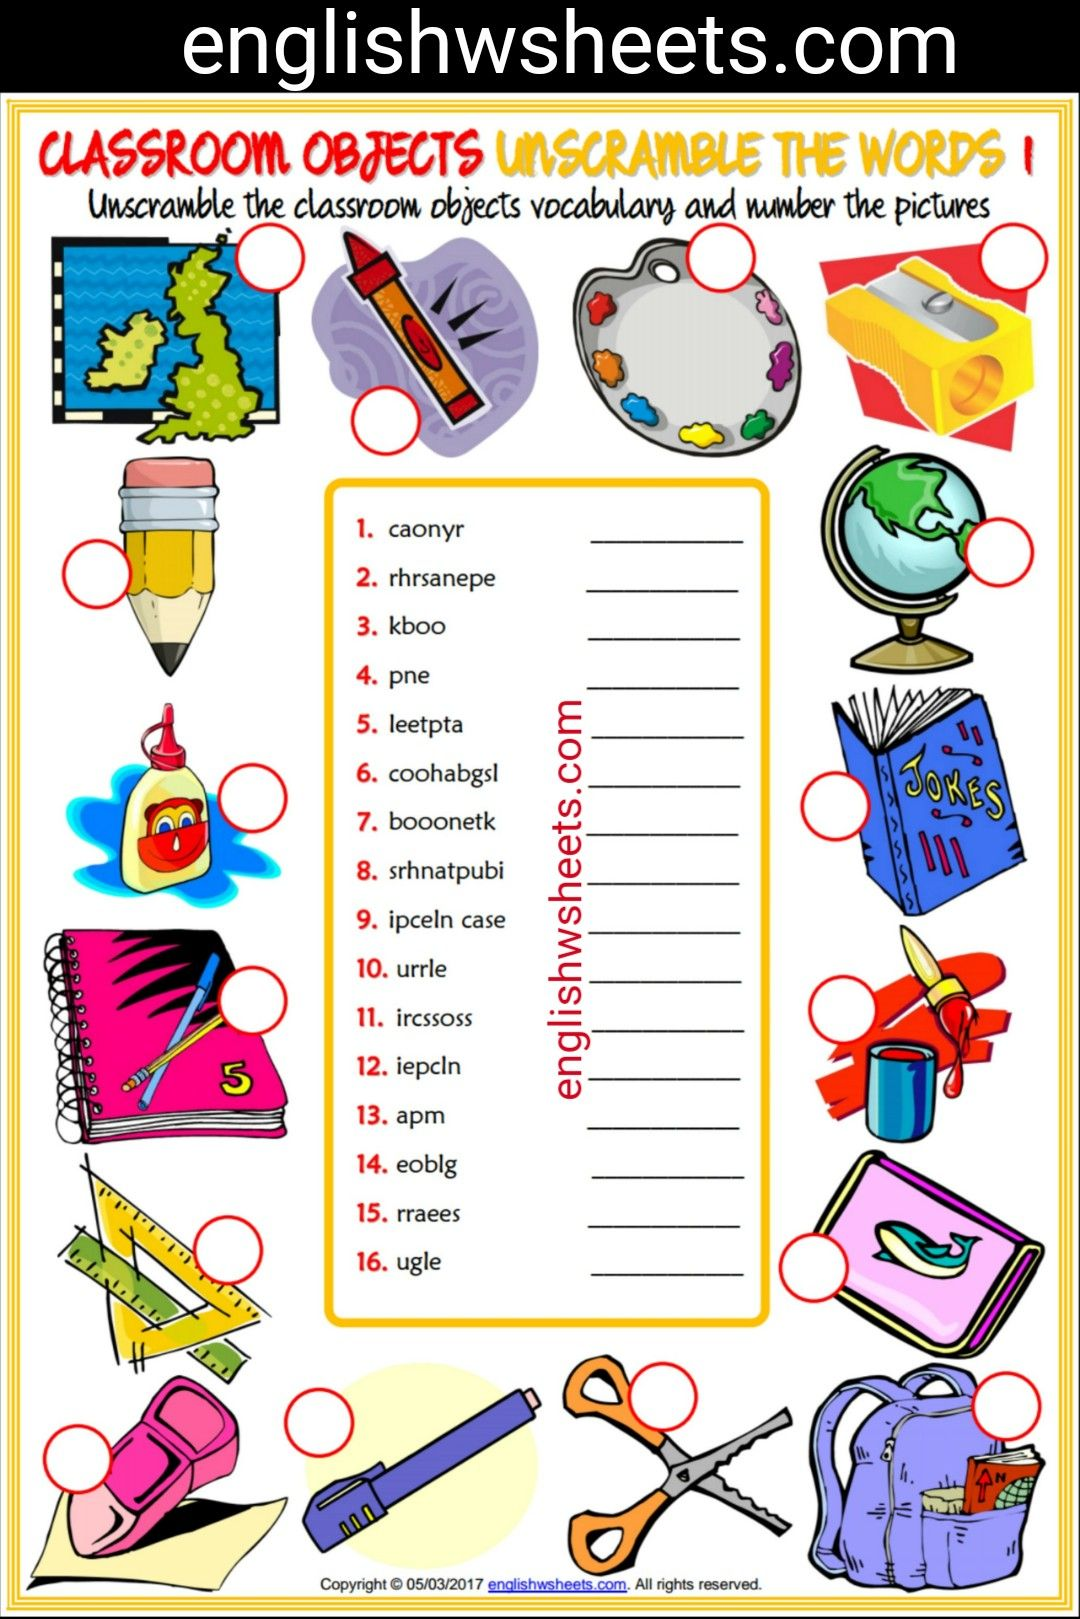 Classroom Objects Esl Printable Unscramble The Words Worksheets For Kids Classroom Objects